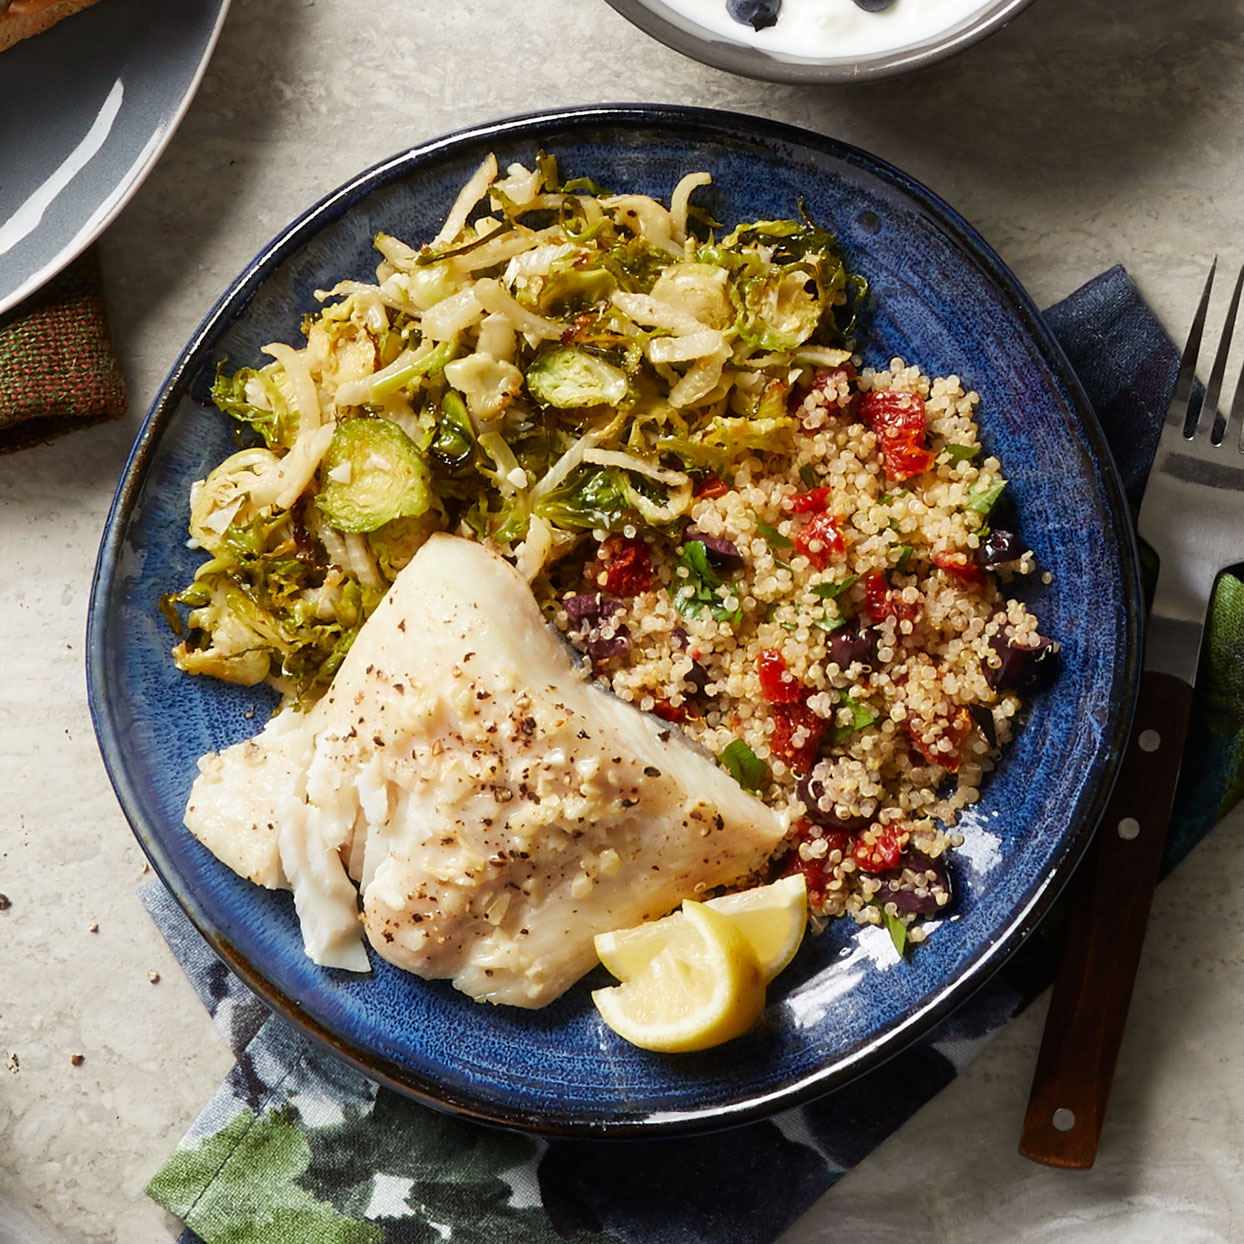 Day 8: Baked Halibut with Brussels Sprouts & Quinoa